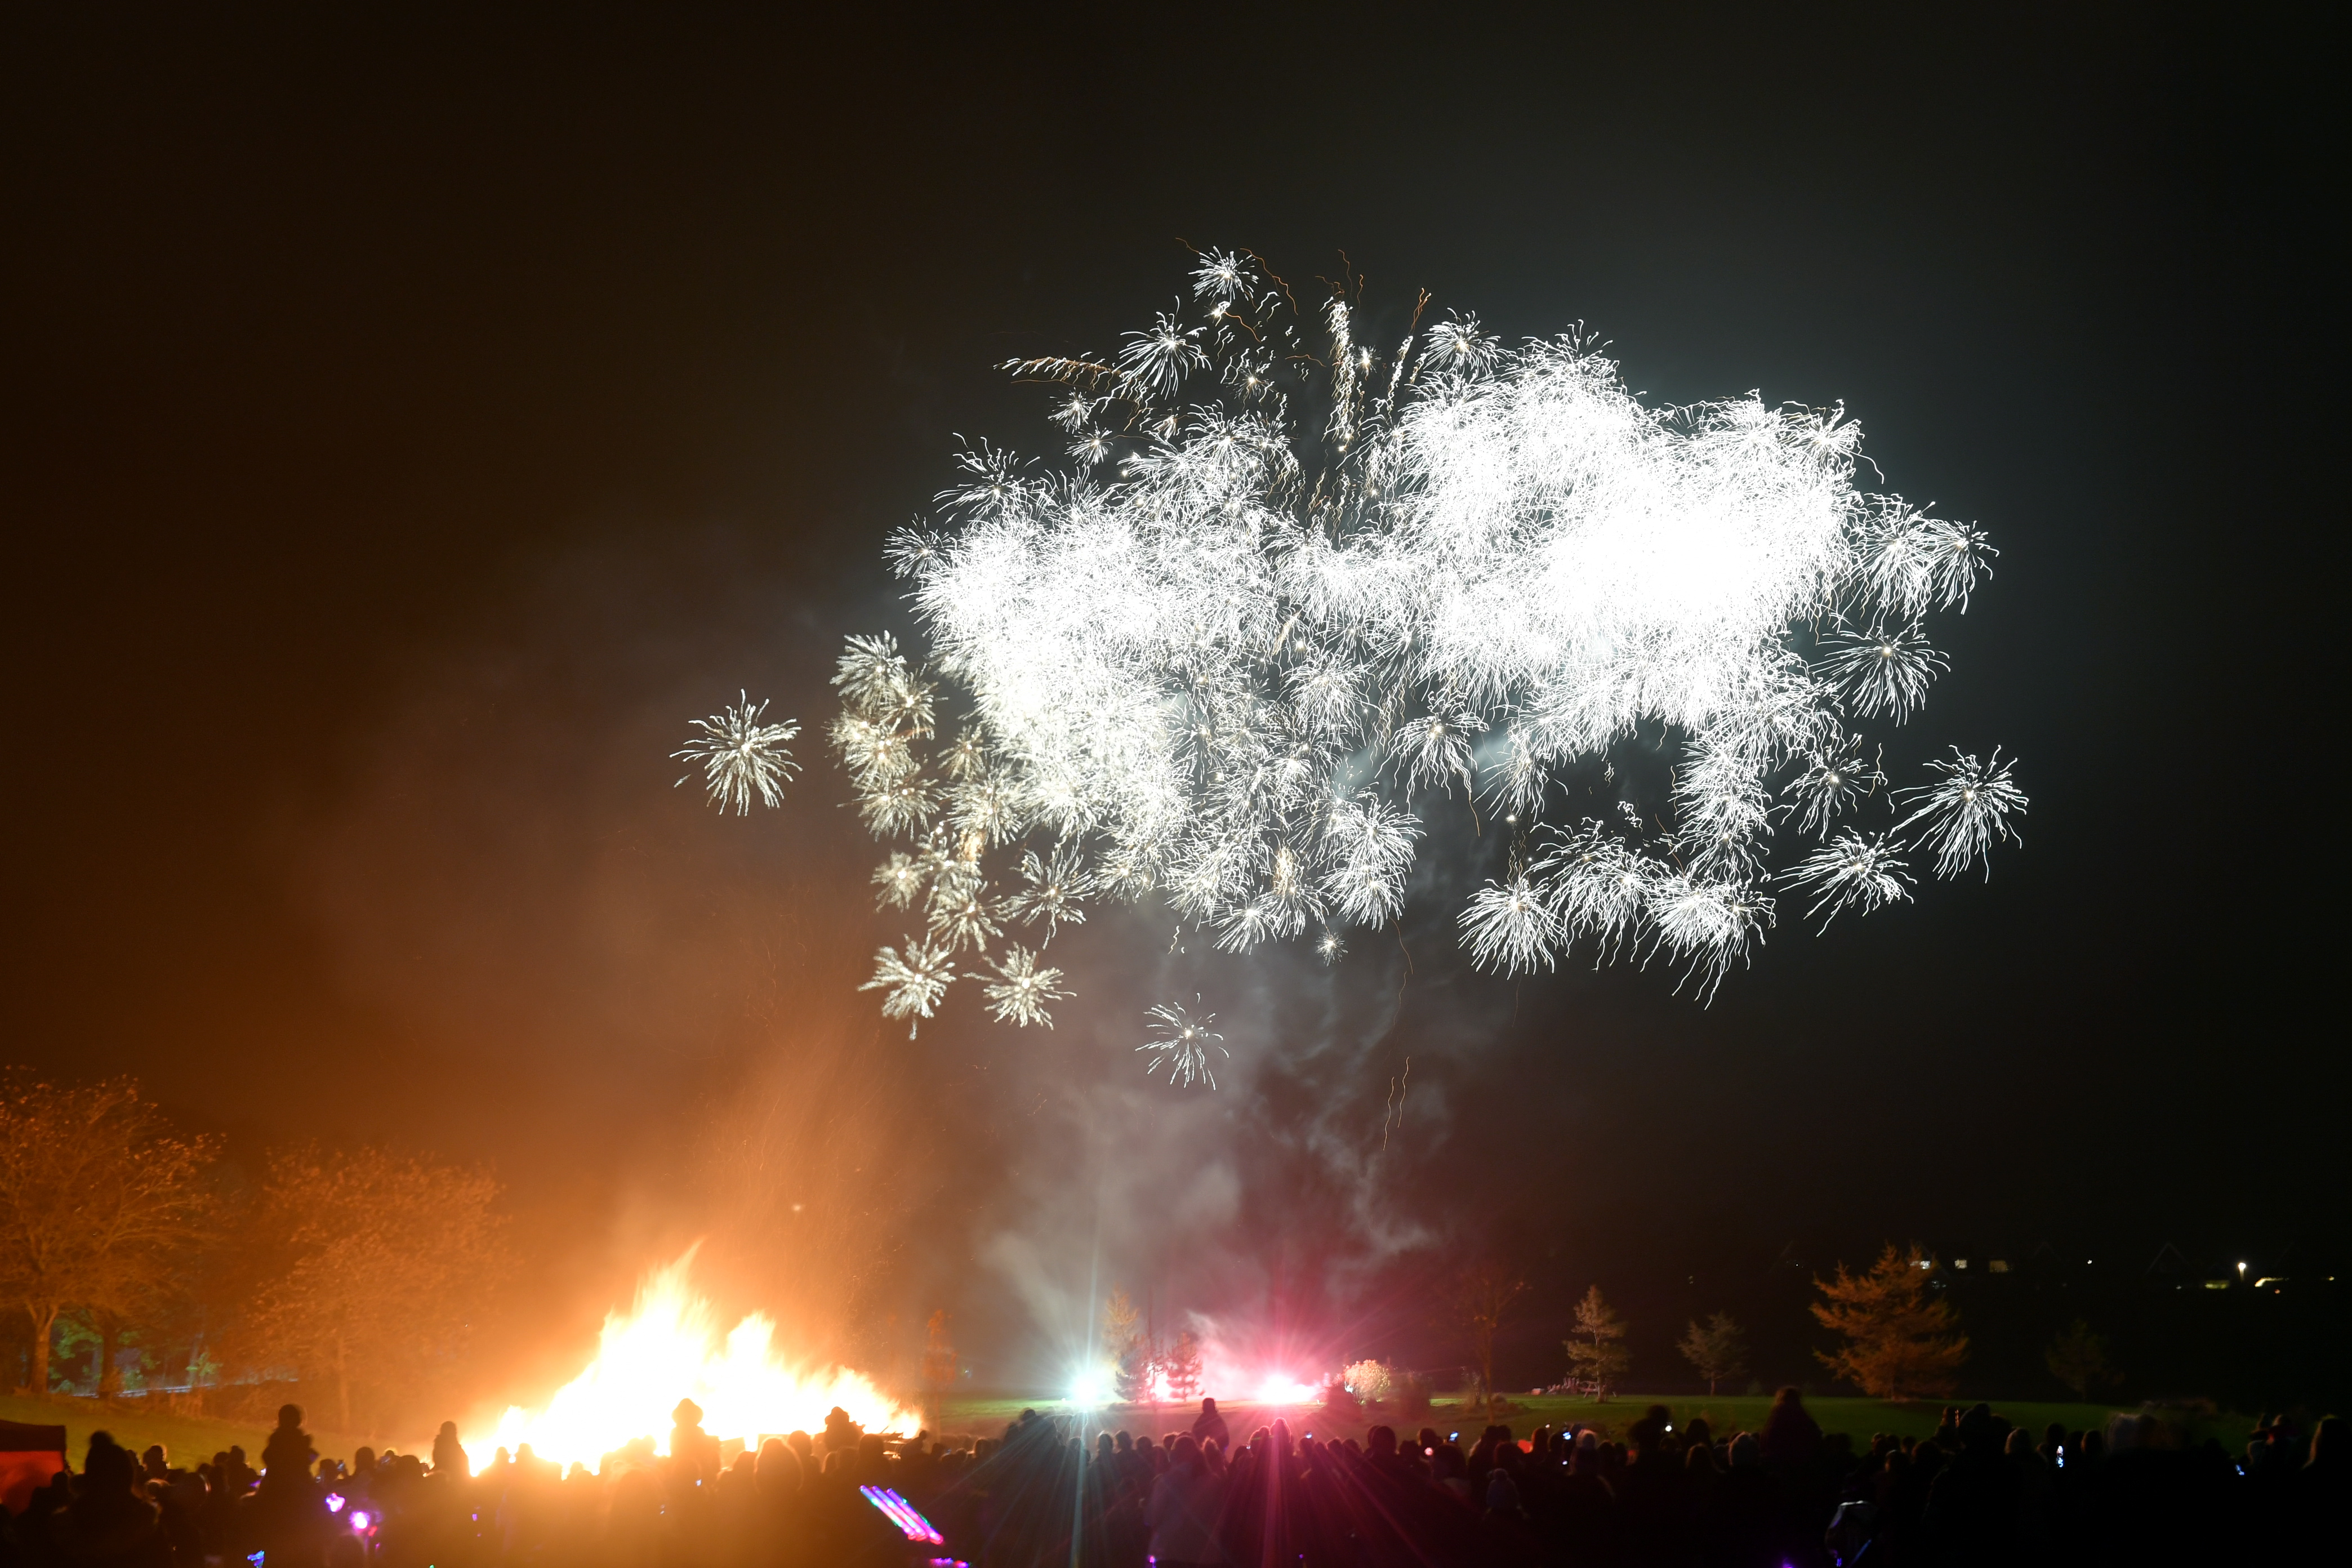 Stonehaven bonfire and fireworks